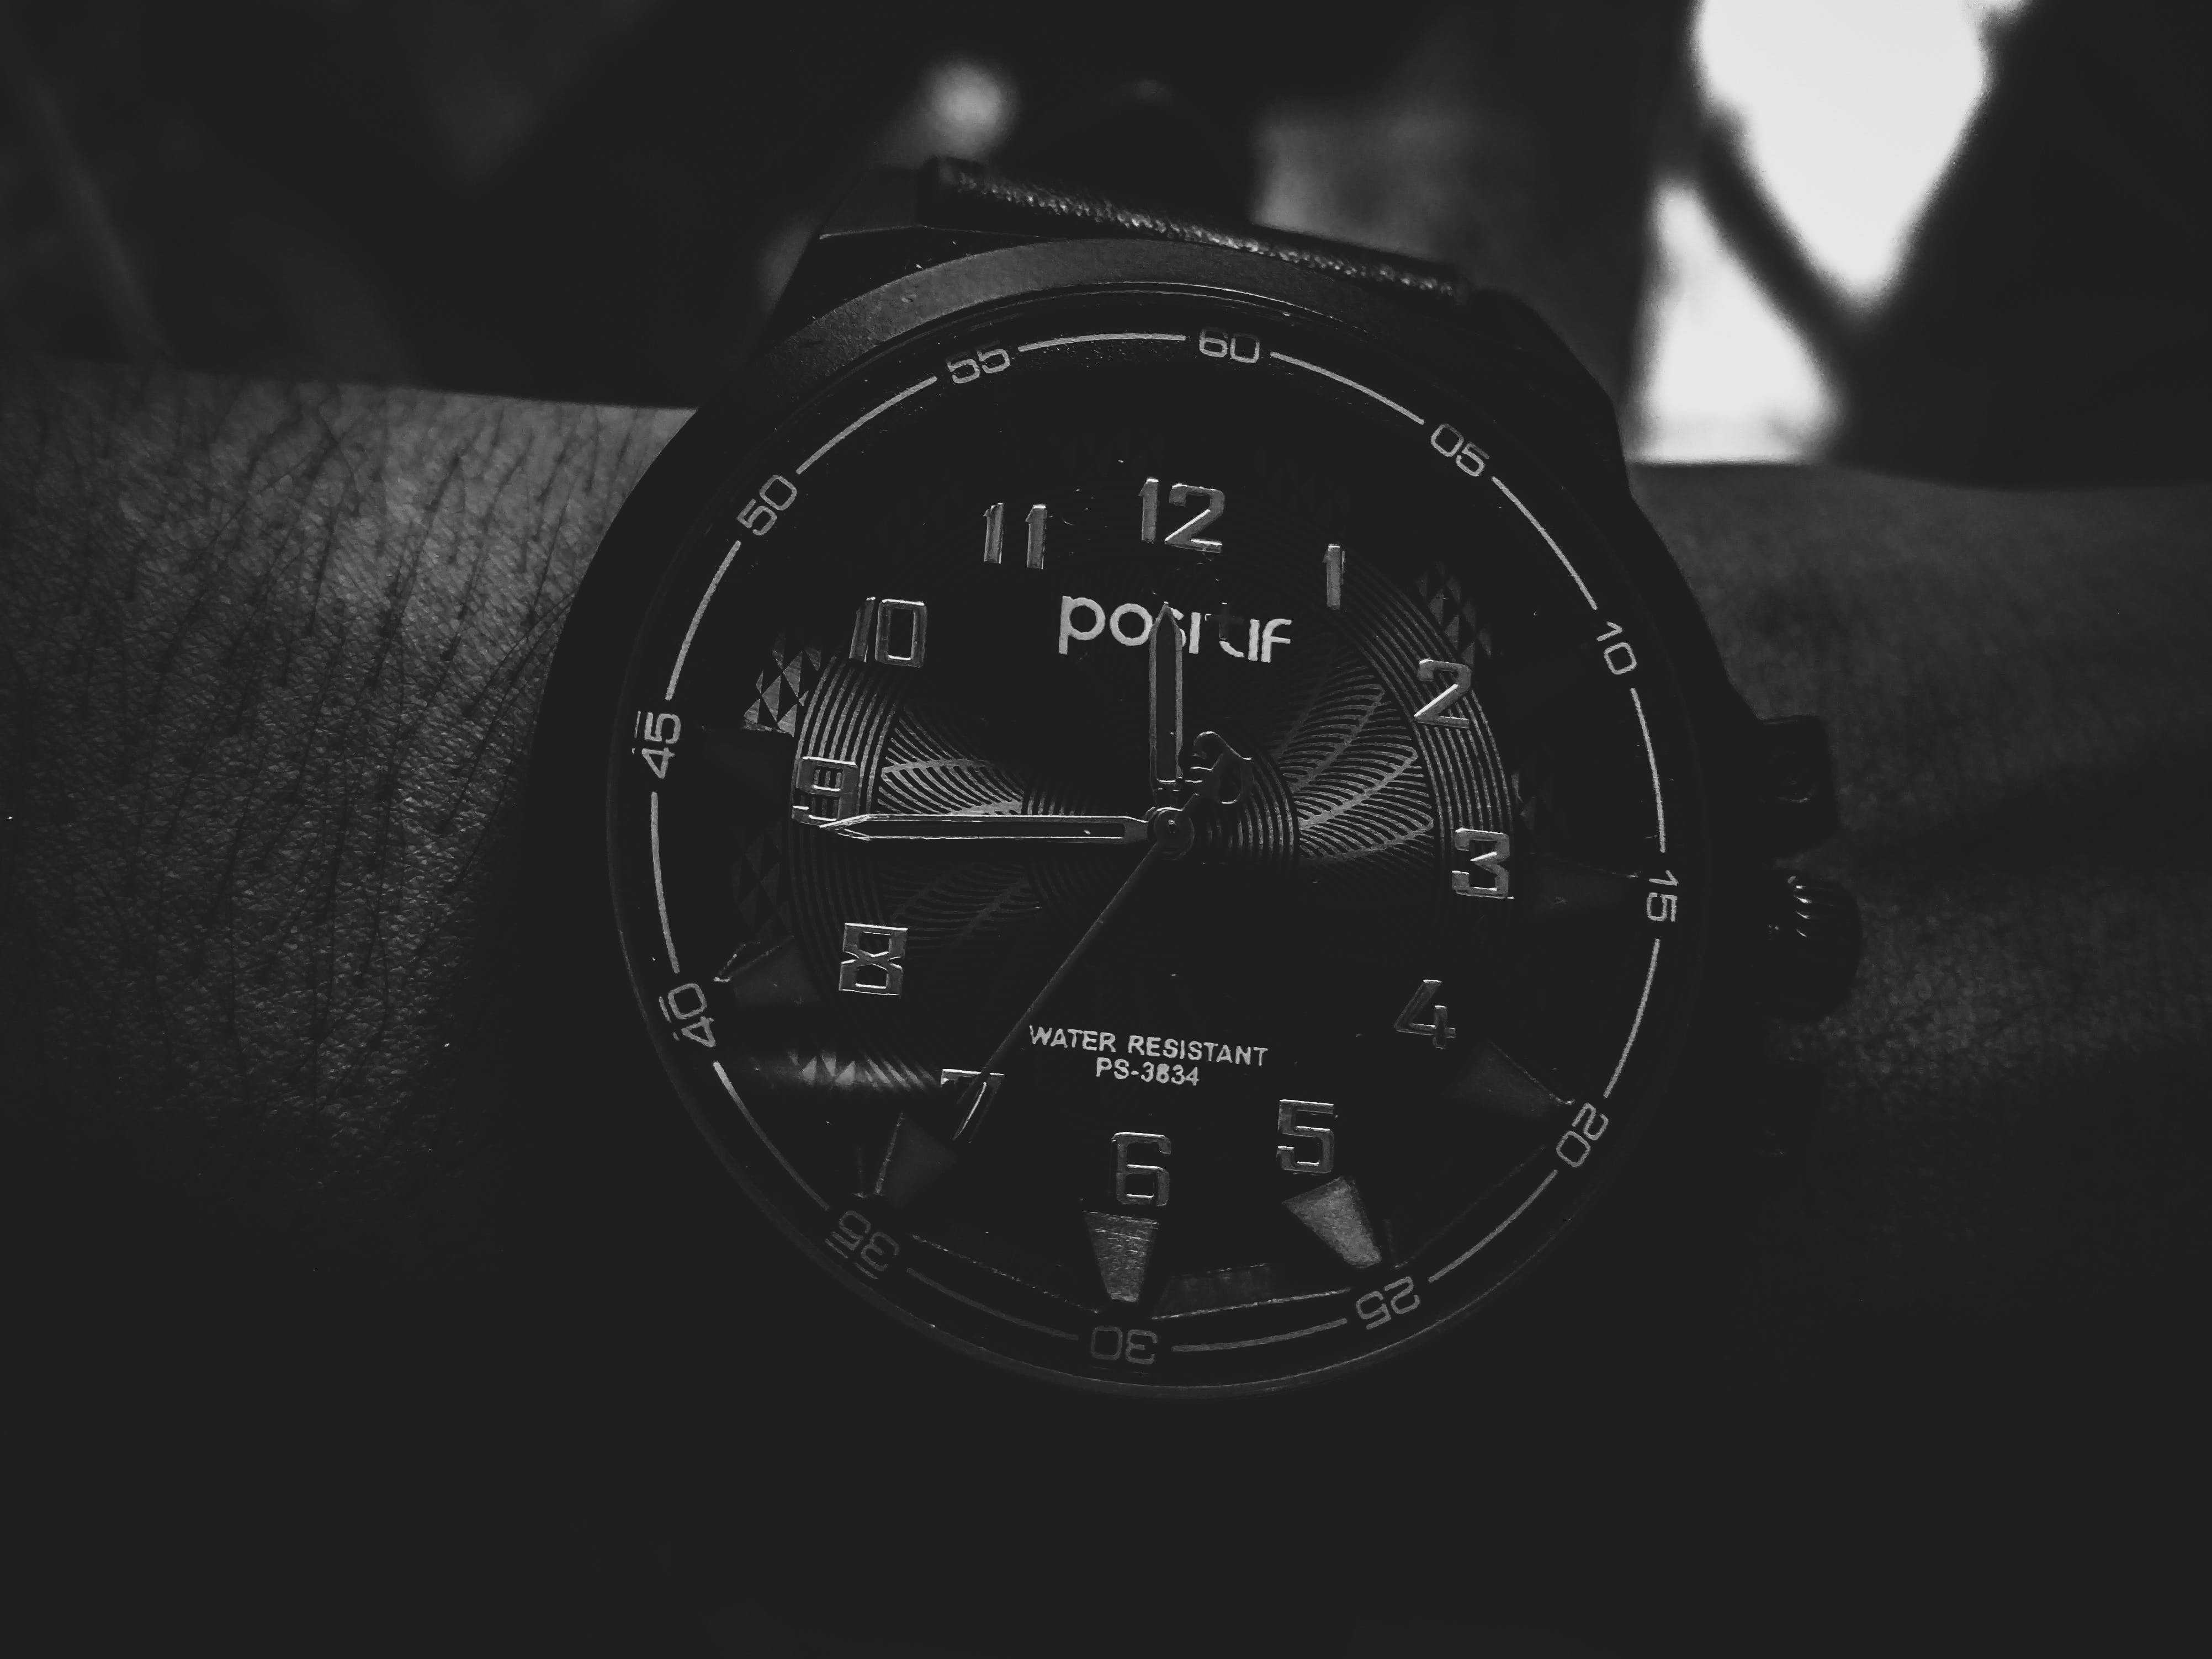 Analog Watch at 11:44